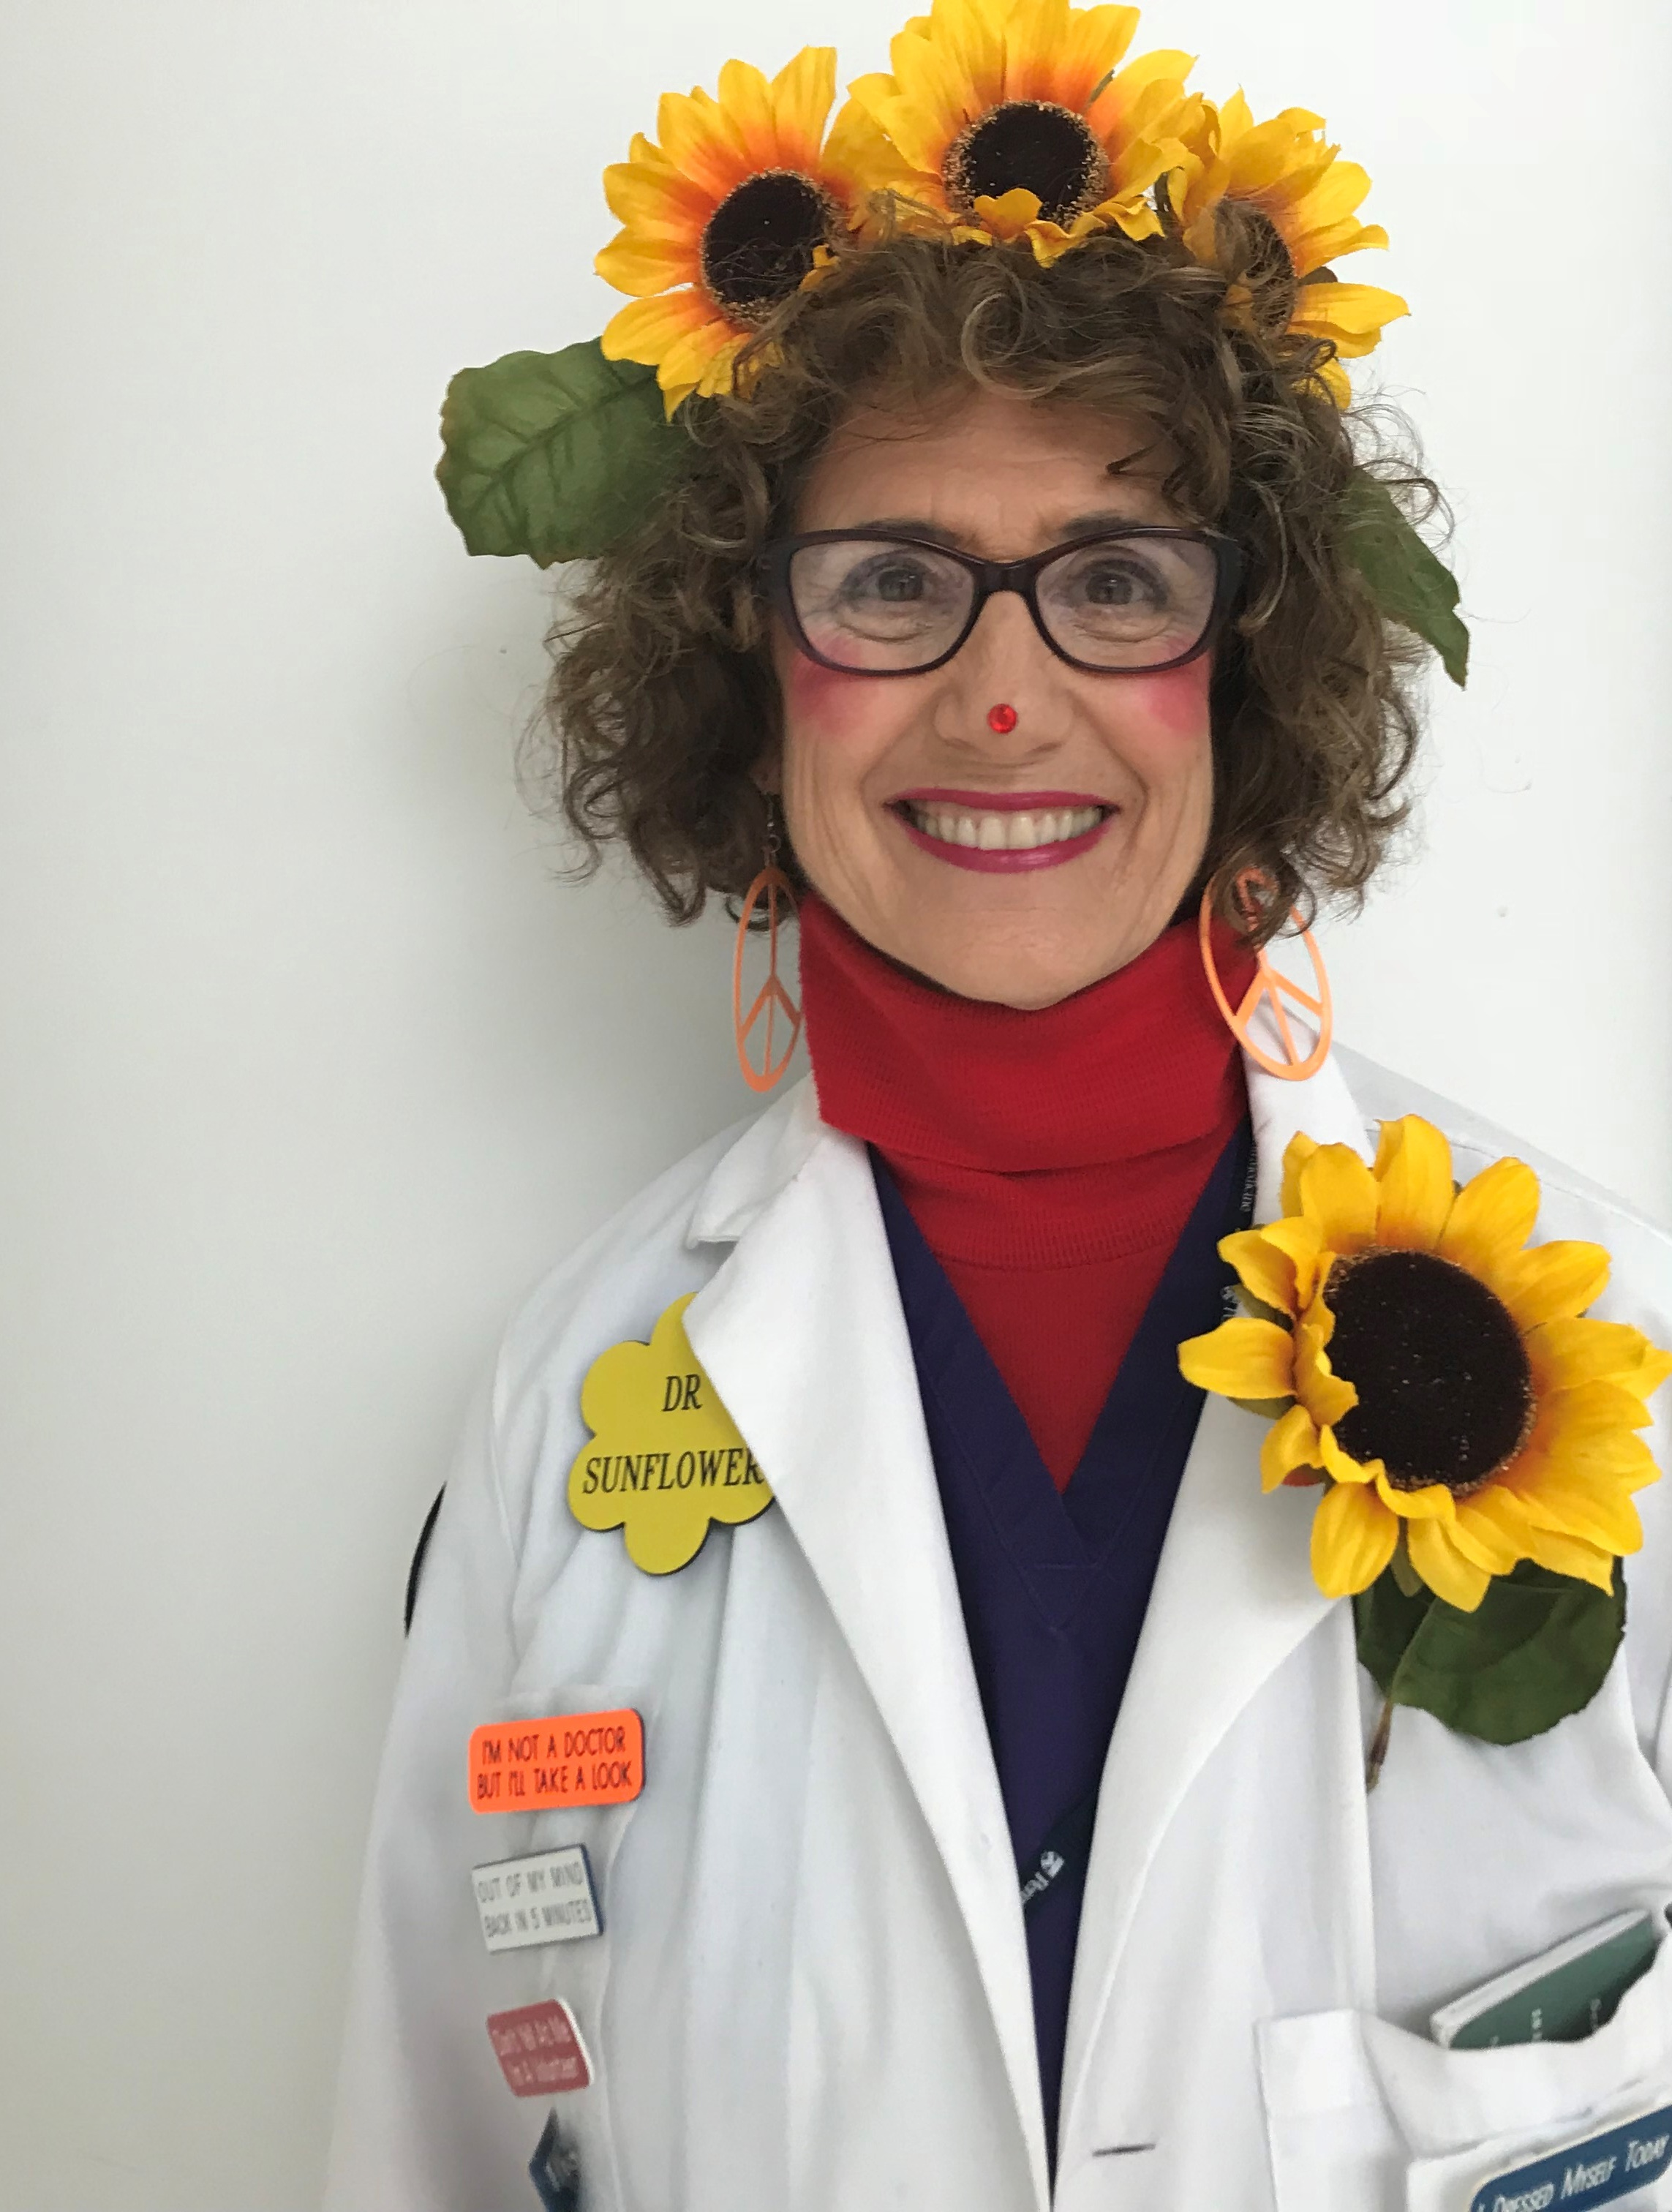 DR Sunflower